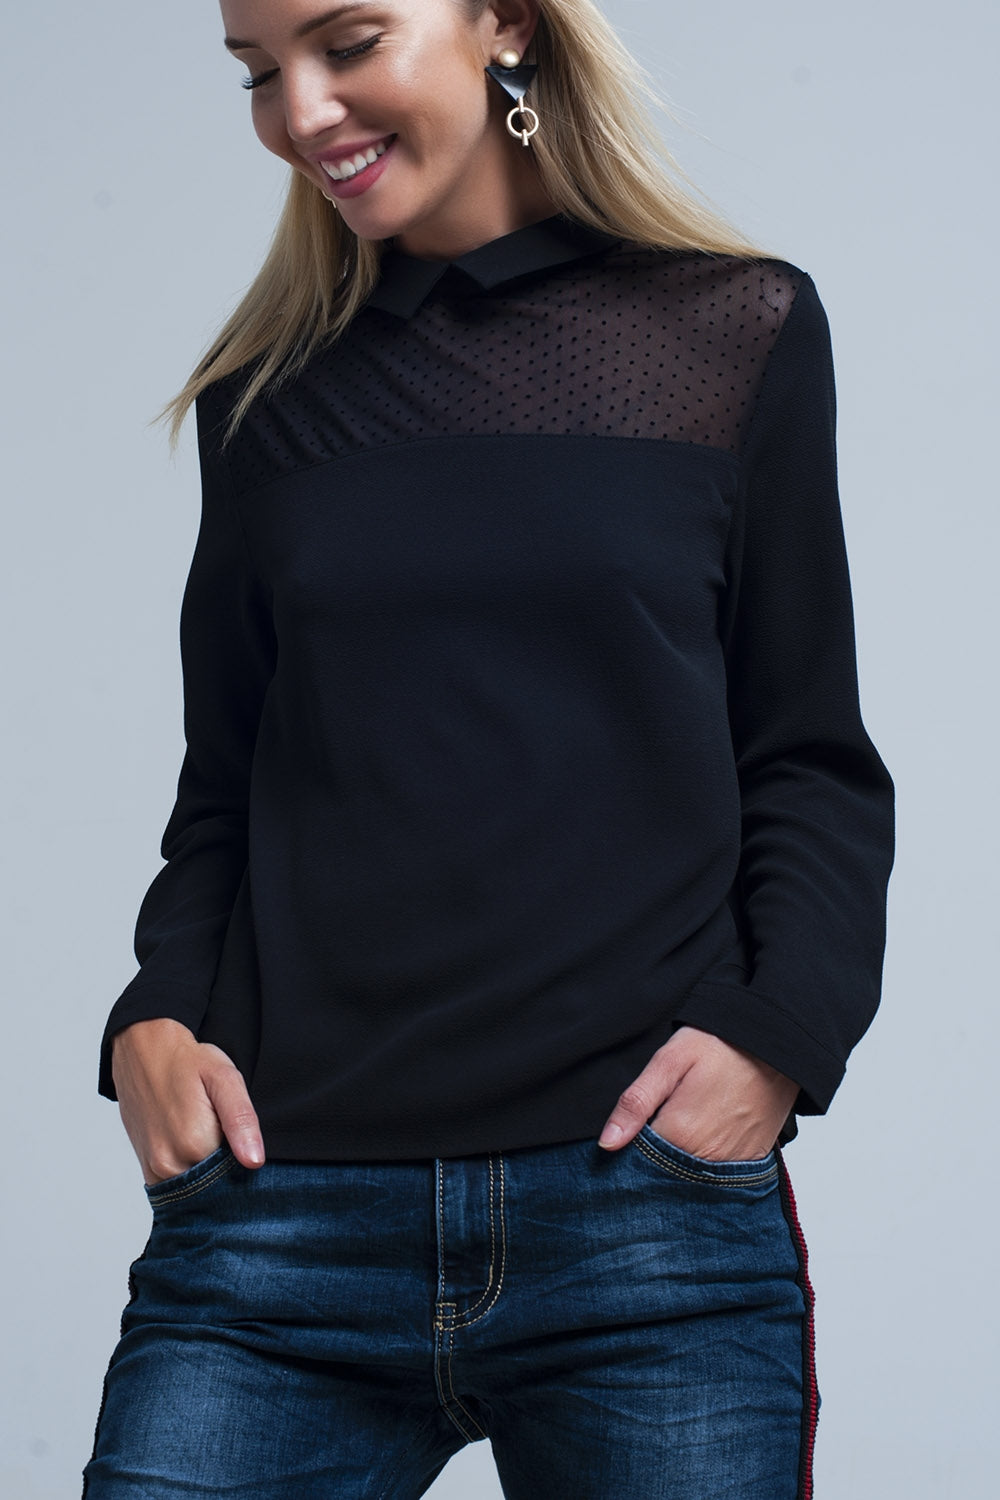 Black shirt with transparent polka dots detail - CalicoMarket